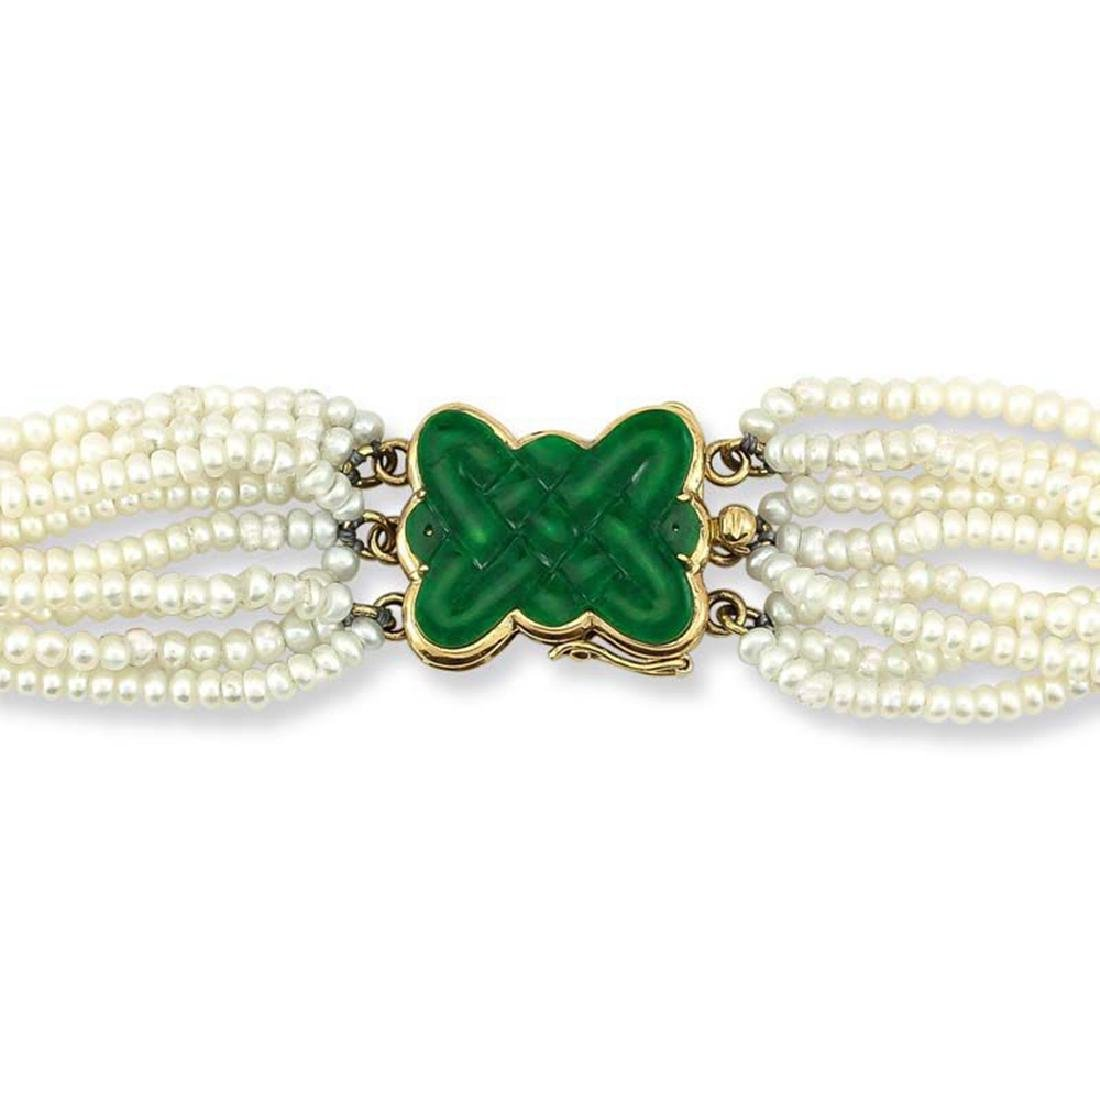 One Of A Kind  14k Yellow Gold Green Jadeite Jade Clasp